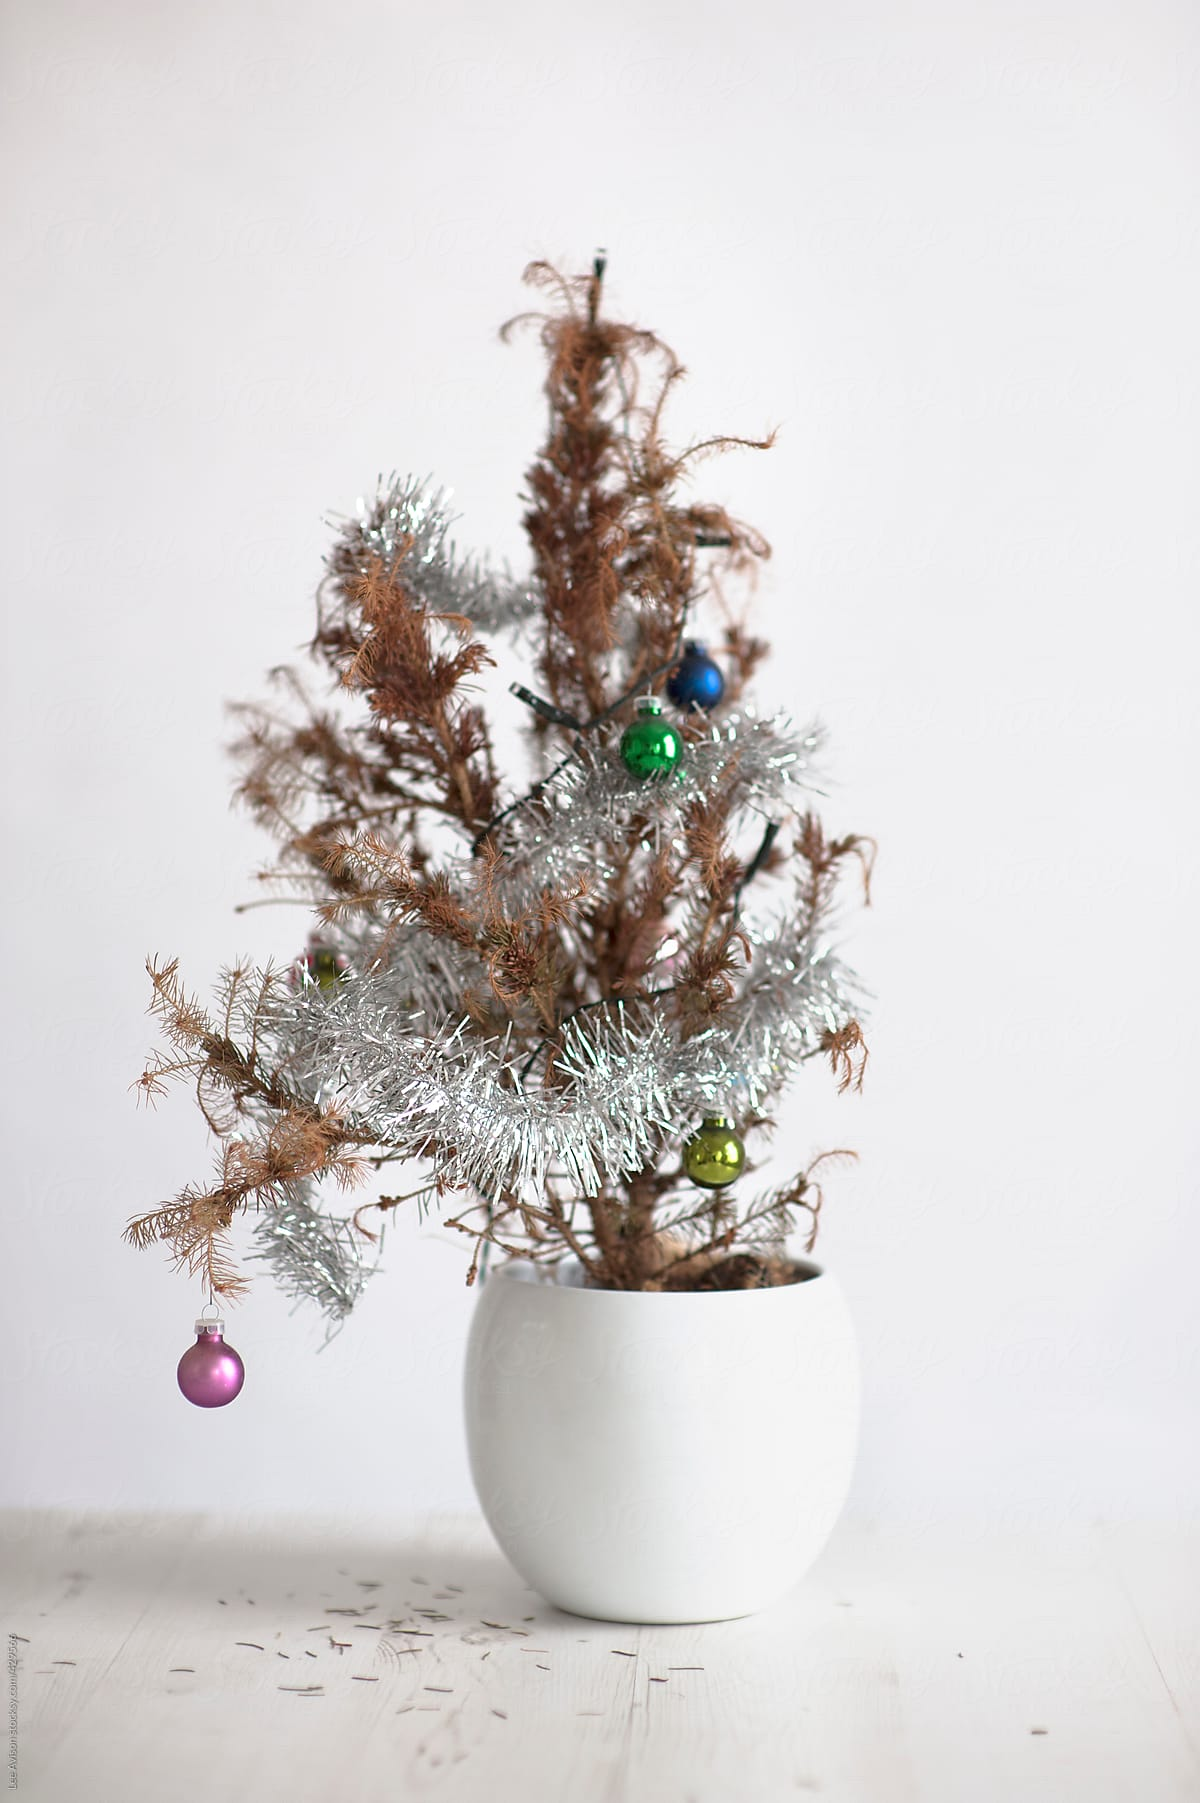 miniature dead christmas tree by lee avison for stocksy united